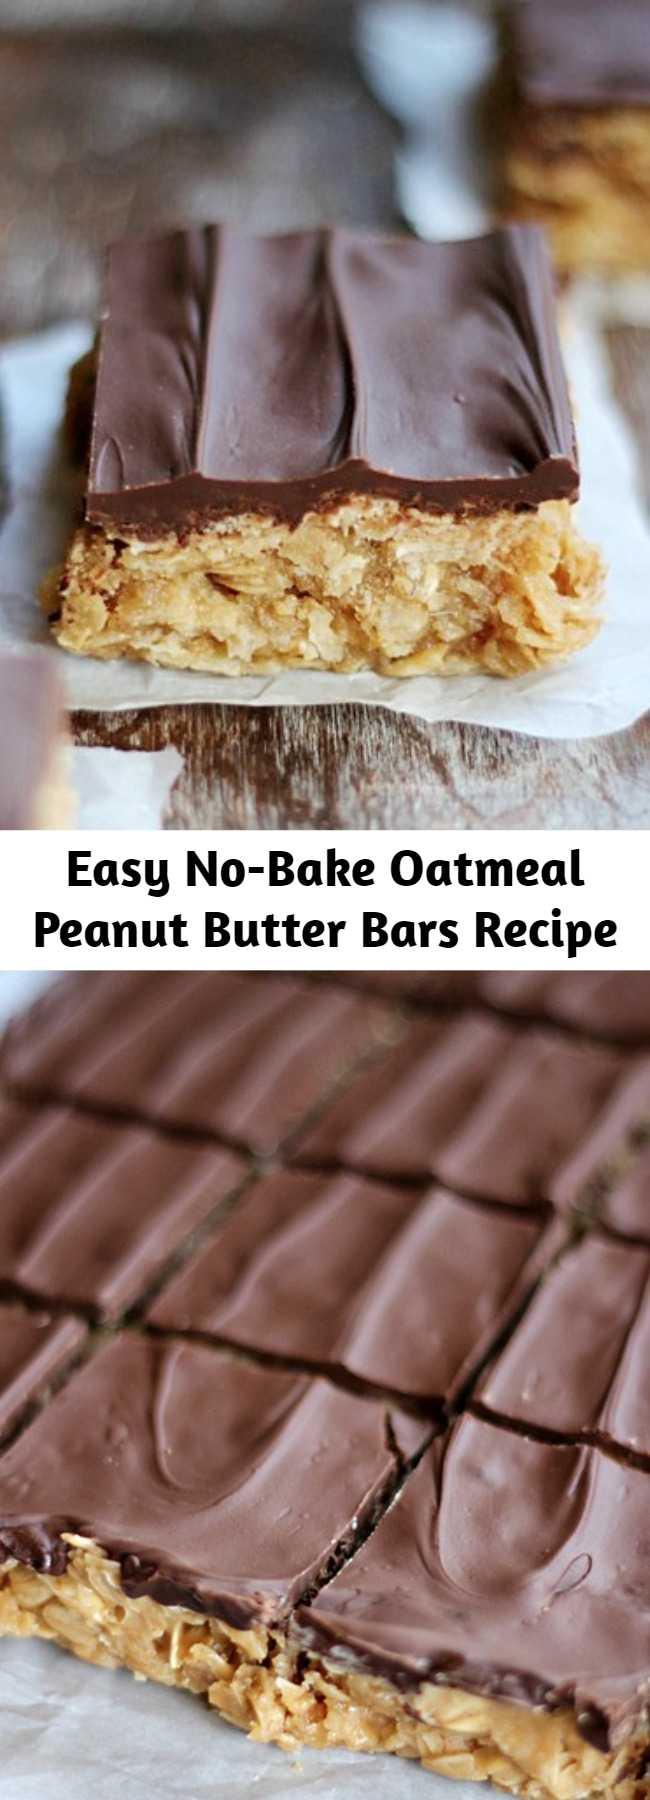 Easy No-Bake Oatmeal Peanut Butter Bars Recipe - Creamy peanut butter intertwining with oats, blanketed with melted chocolate and cut into bite size squares! You'll love how easy and scrumptious these No Bake Oatmeal Peanut Butter Bars are! #NoBakeBars